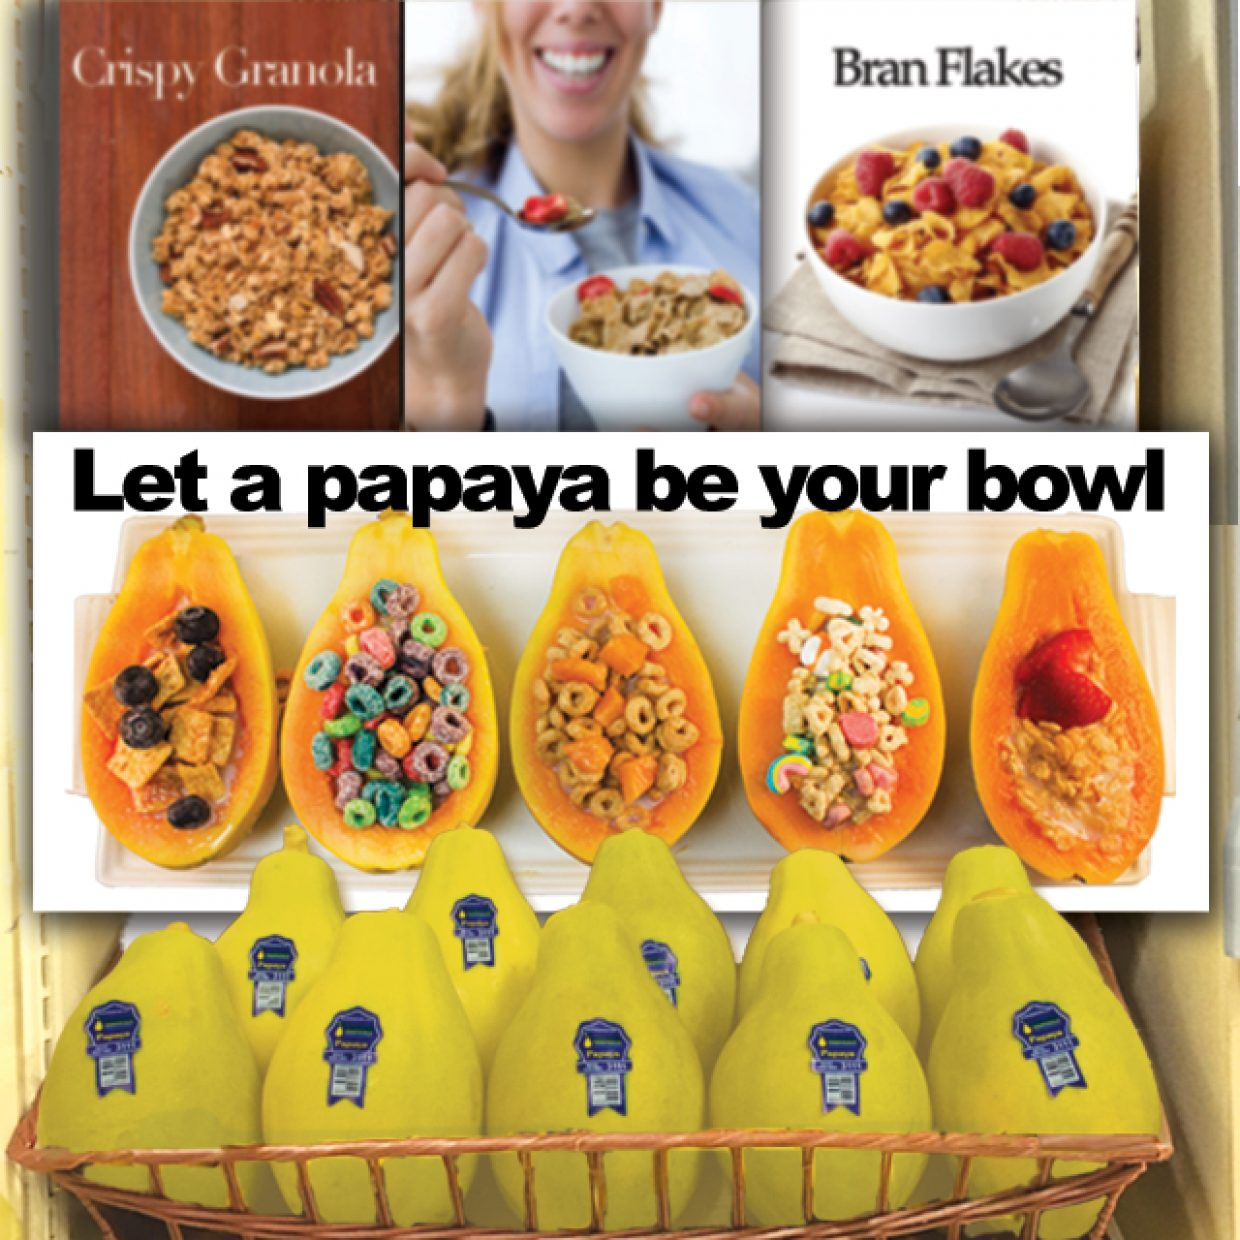 Let a Solo papaya be your bowl